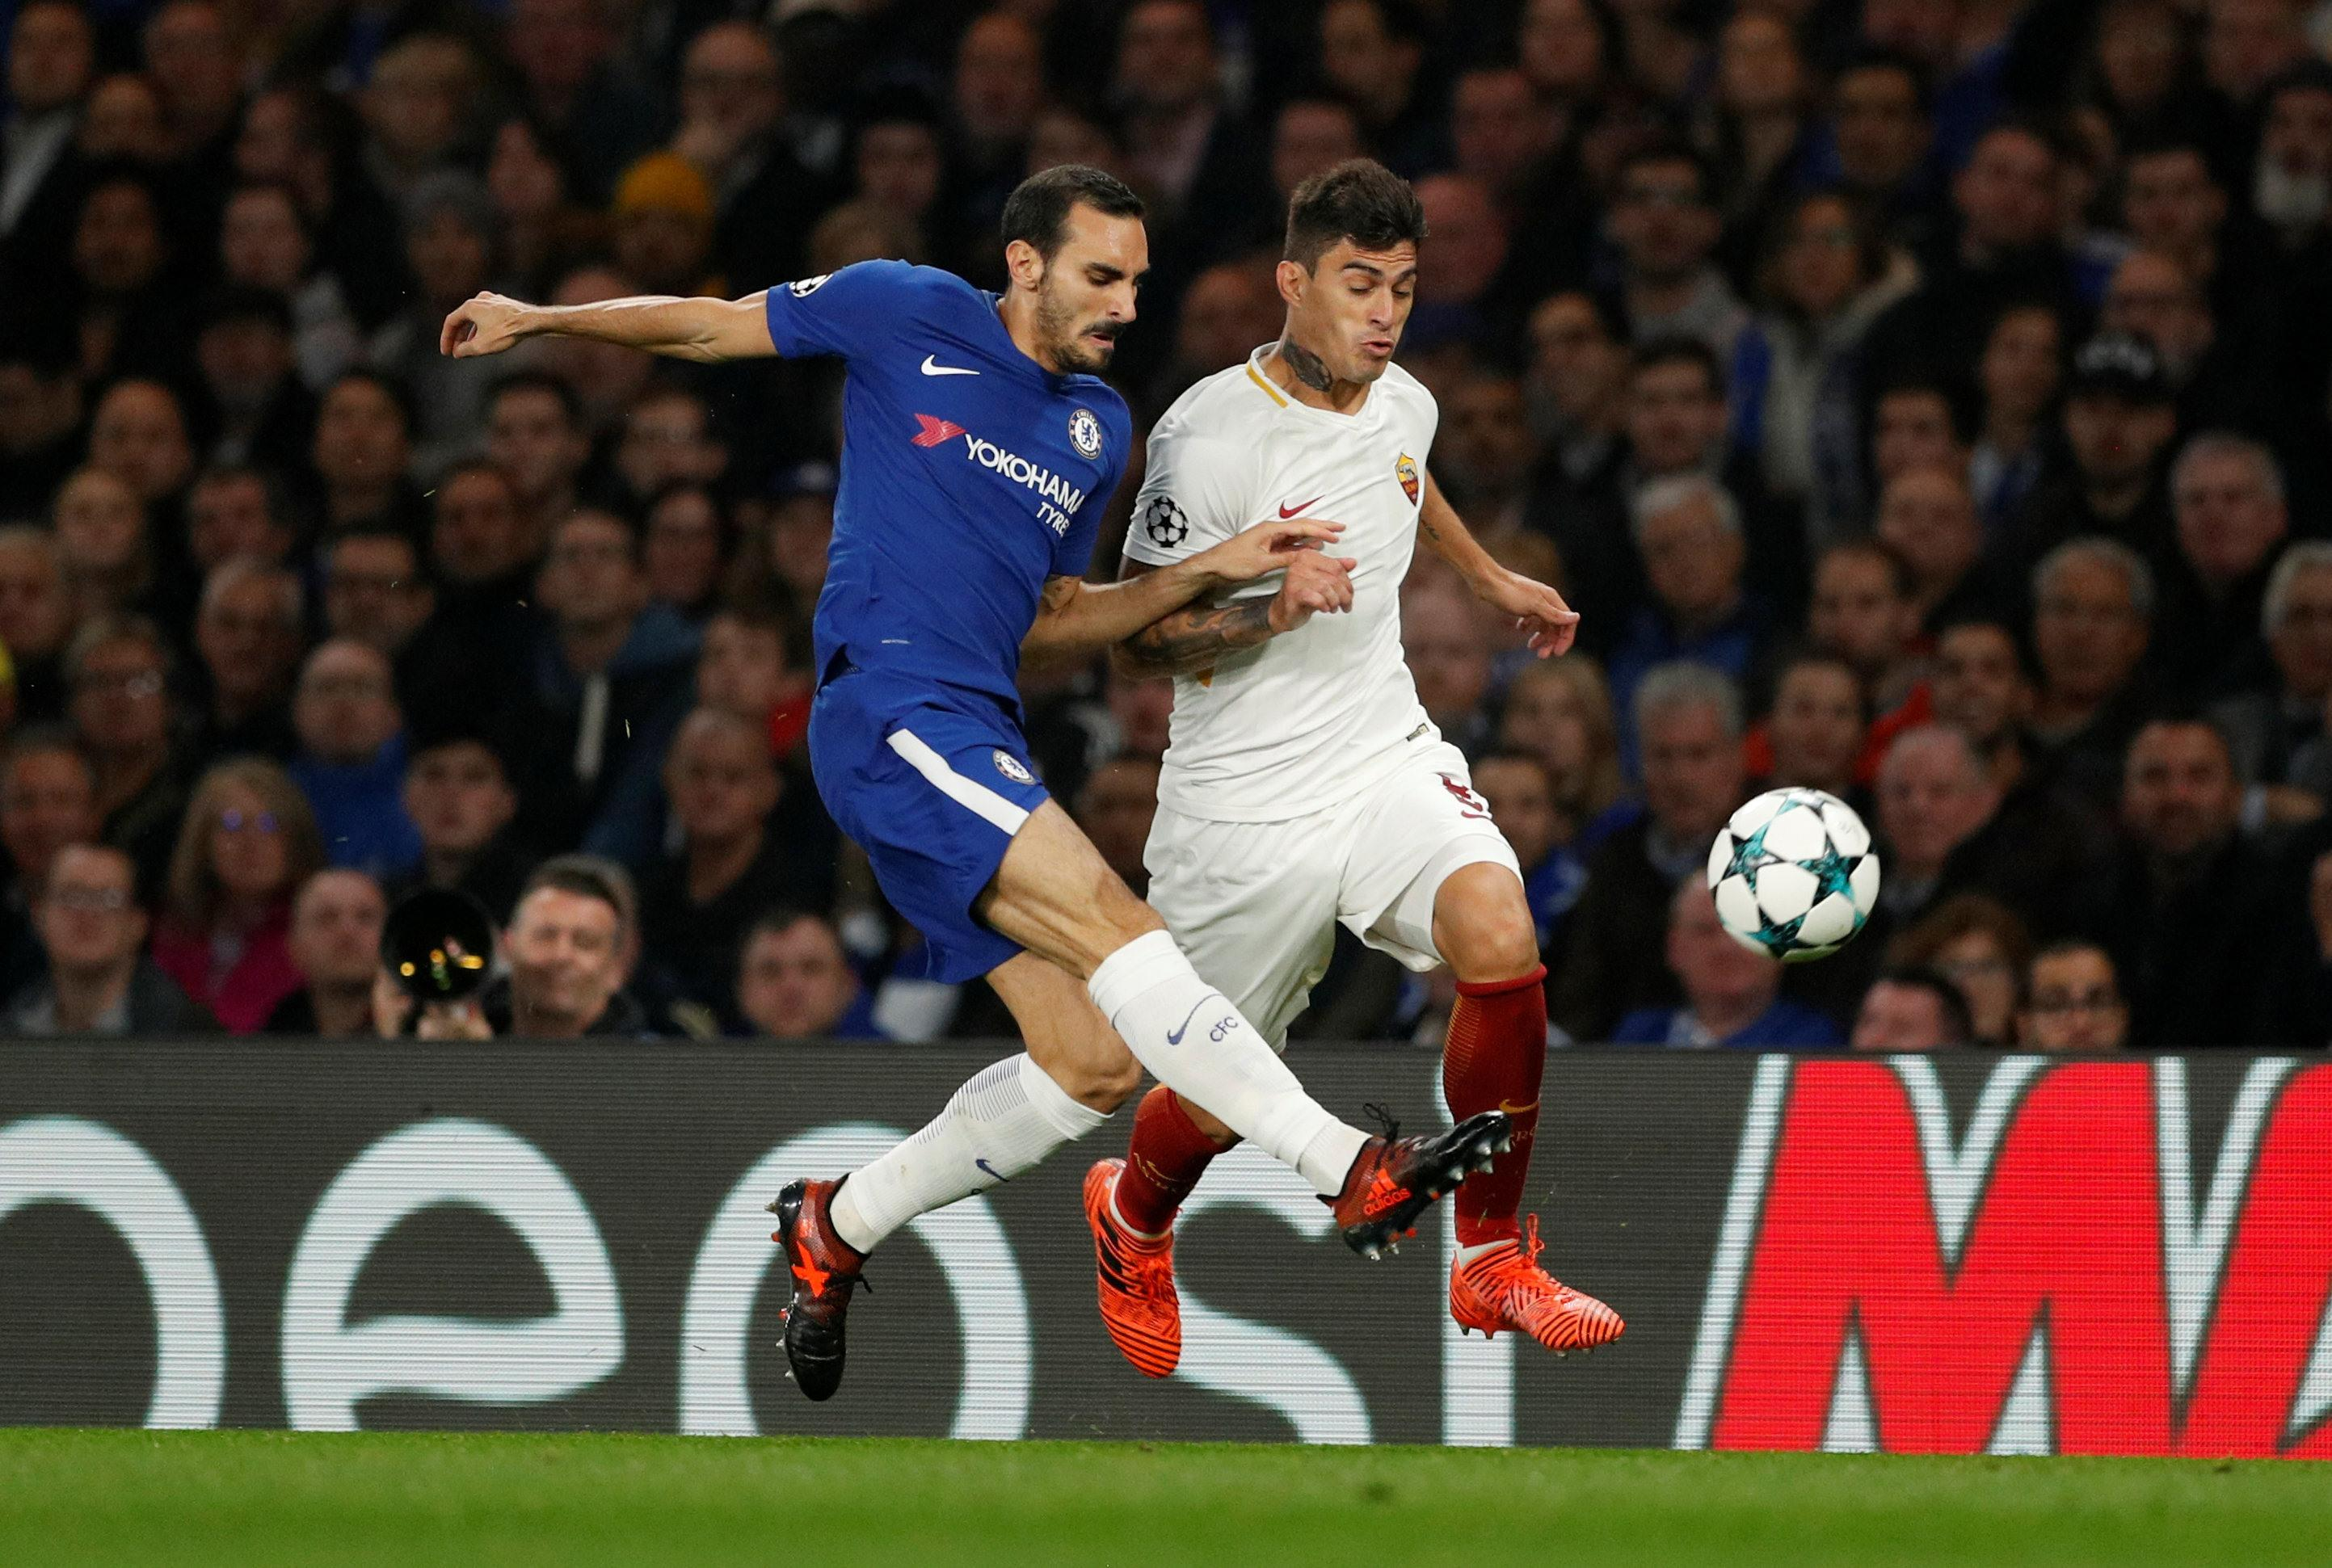 Chelsea Demand Big Money For Zappacosta